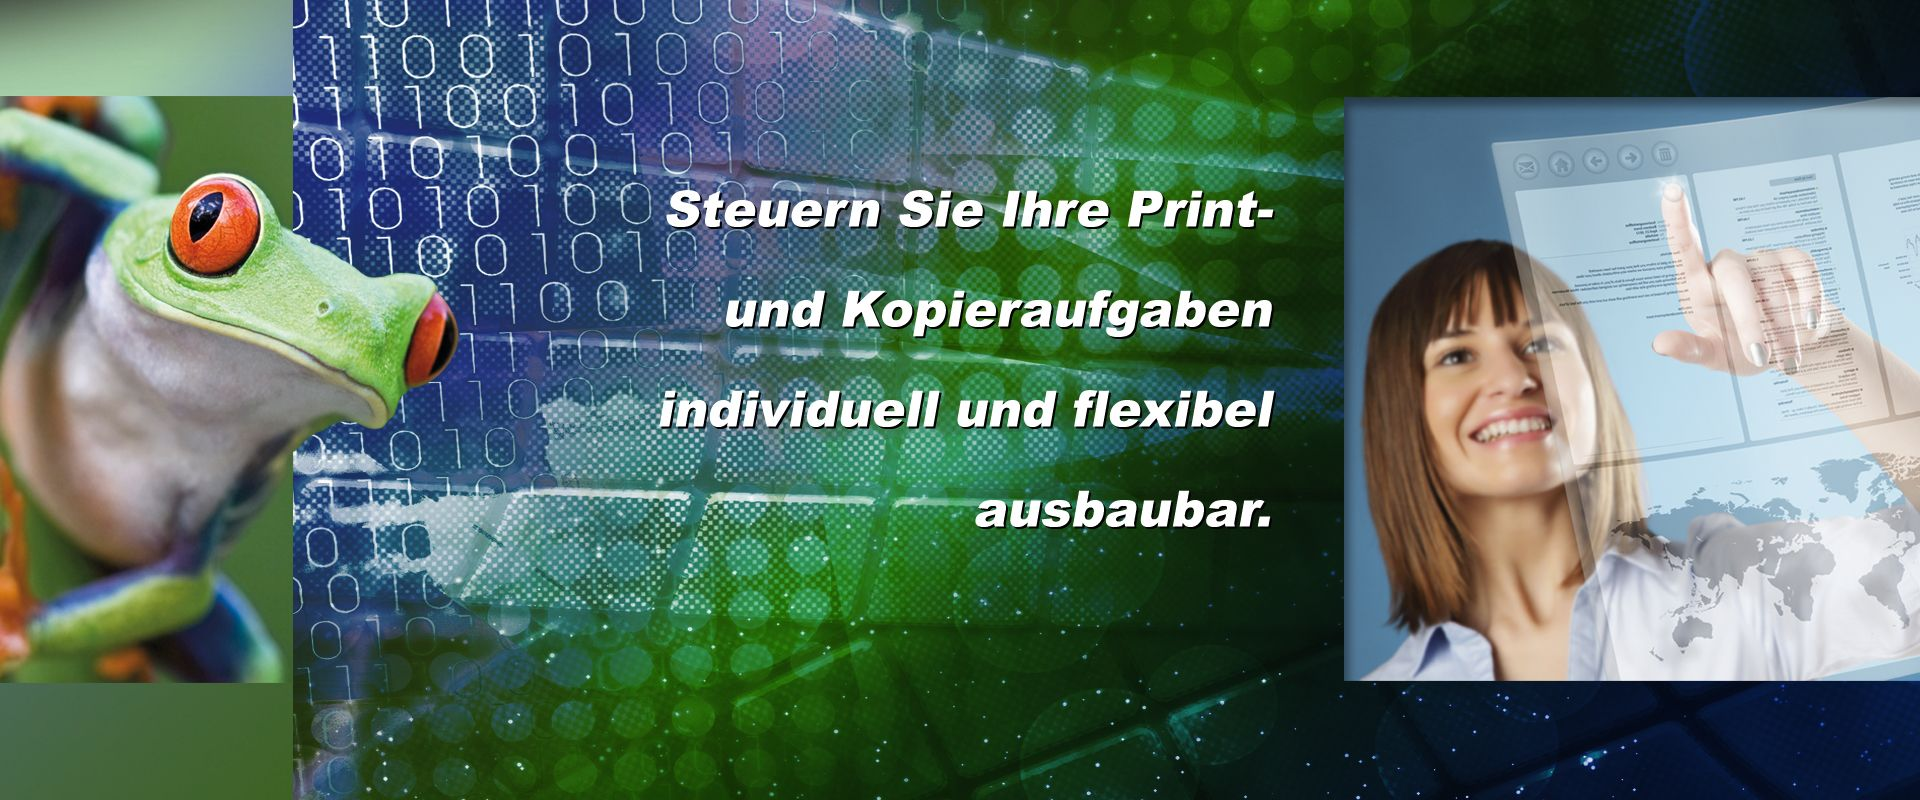 Follow2Print und Security by Printhof